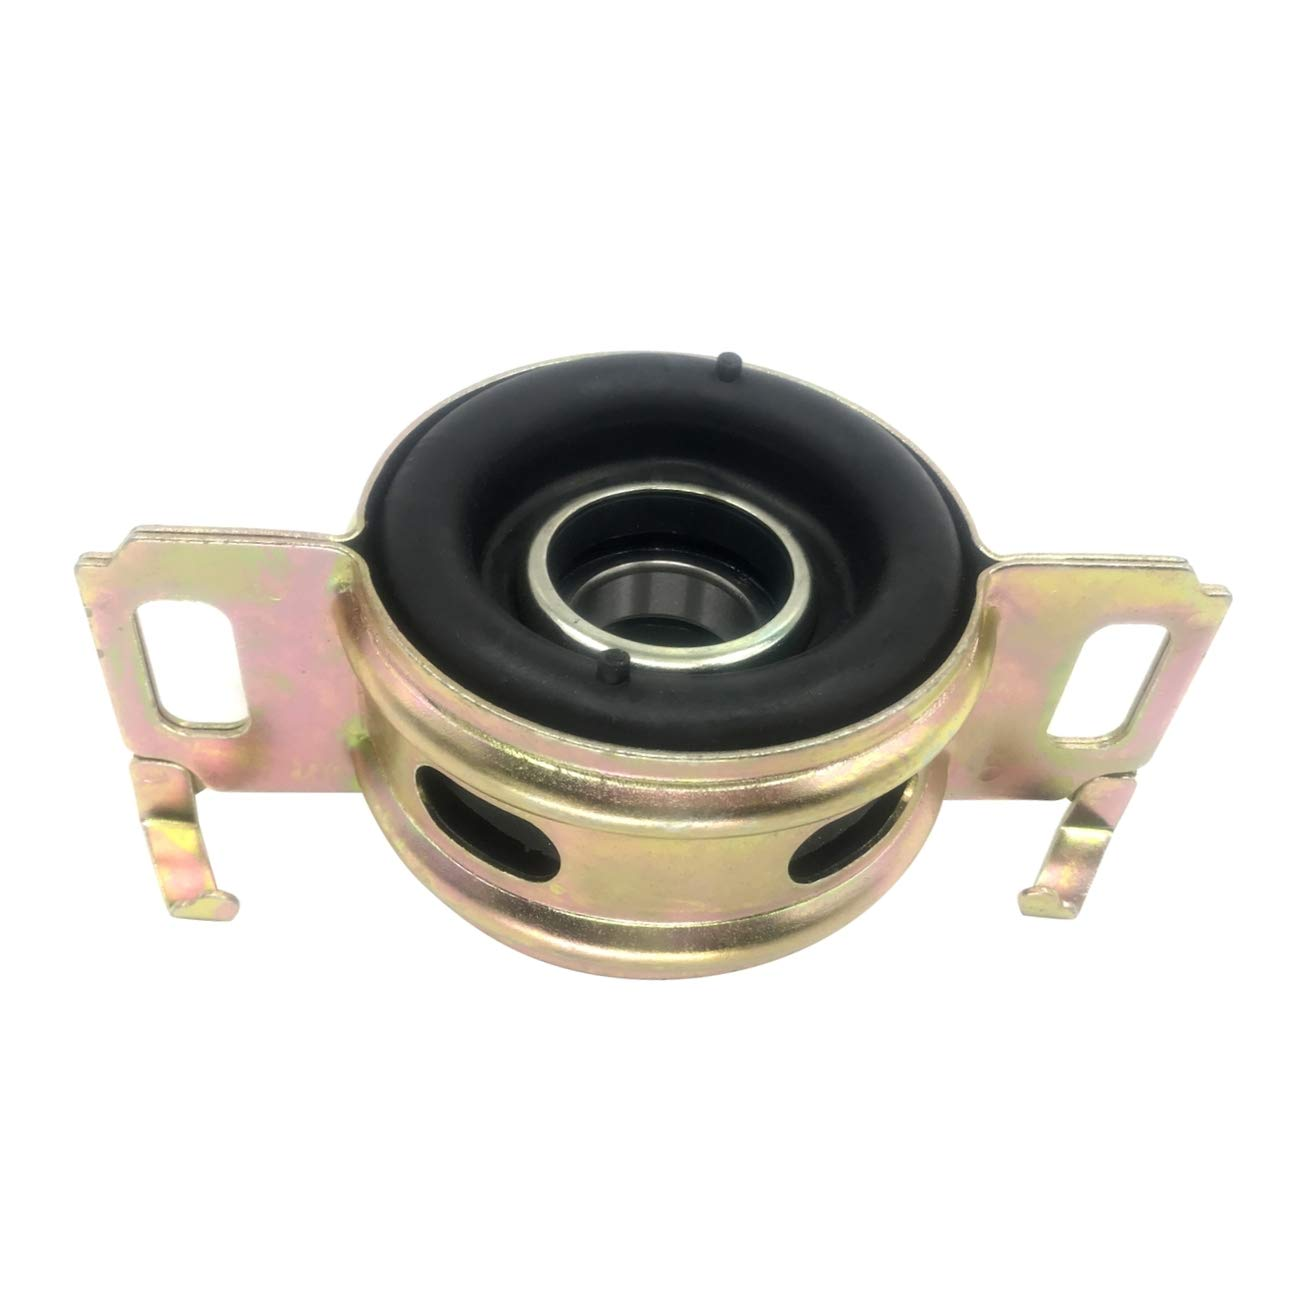 SKP SK934401 Drive Shaft Center Support Bearing